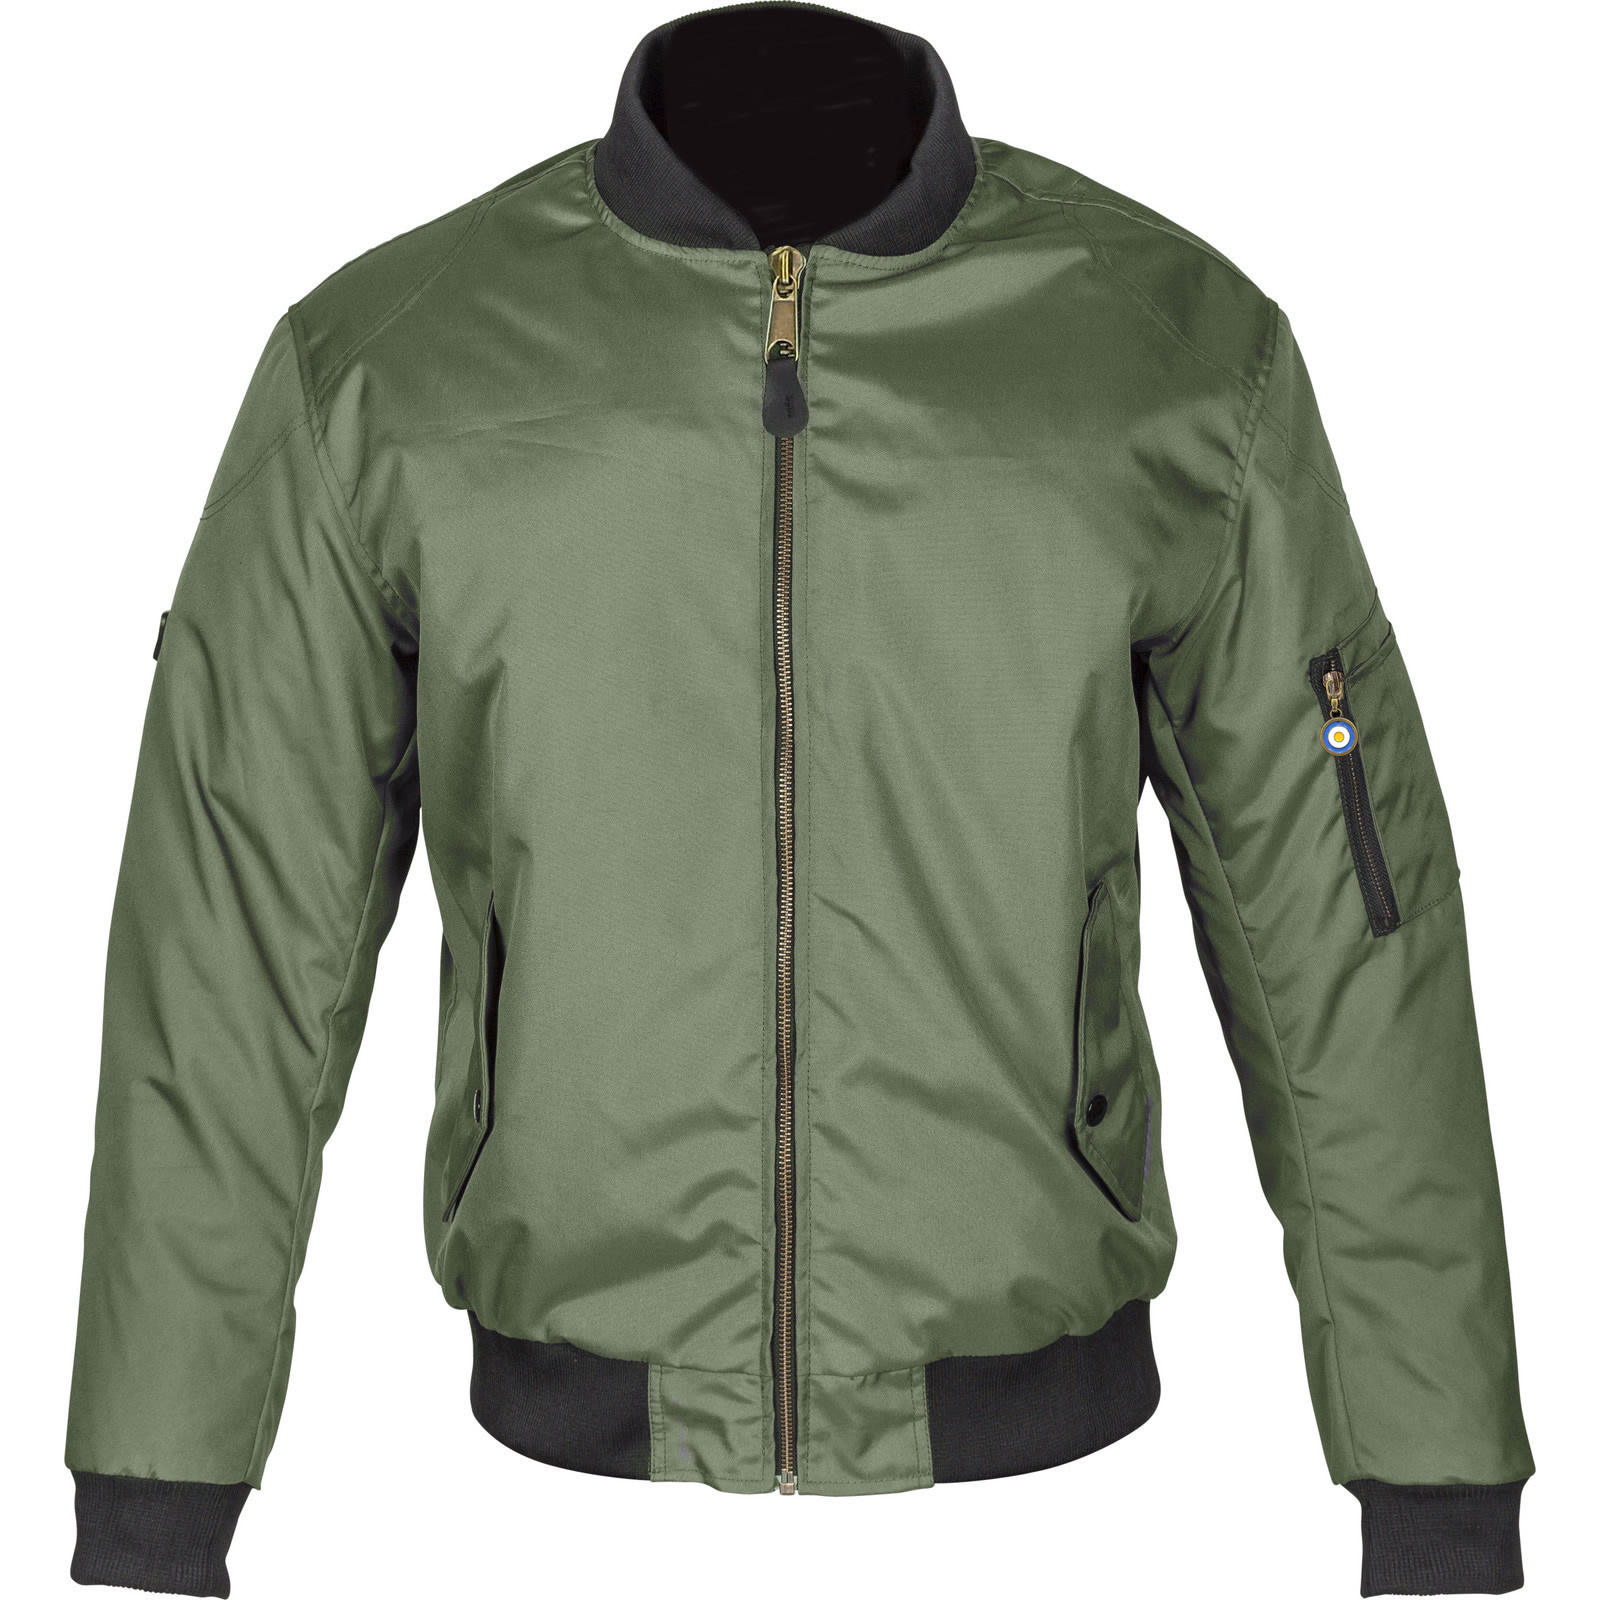 Spada Air Force One Motorcycle Jacket Bomber Motorbike WP ...